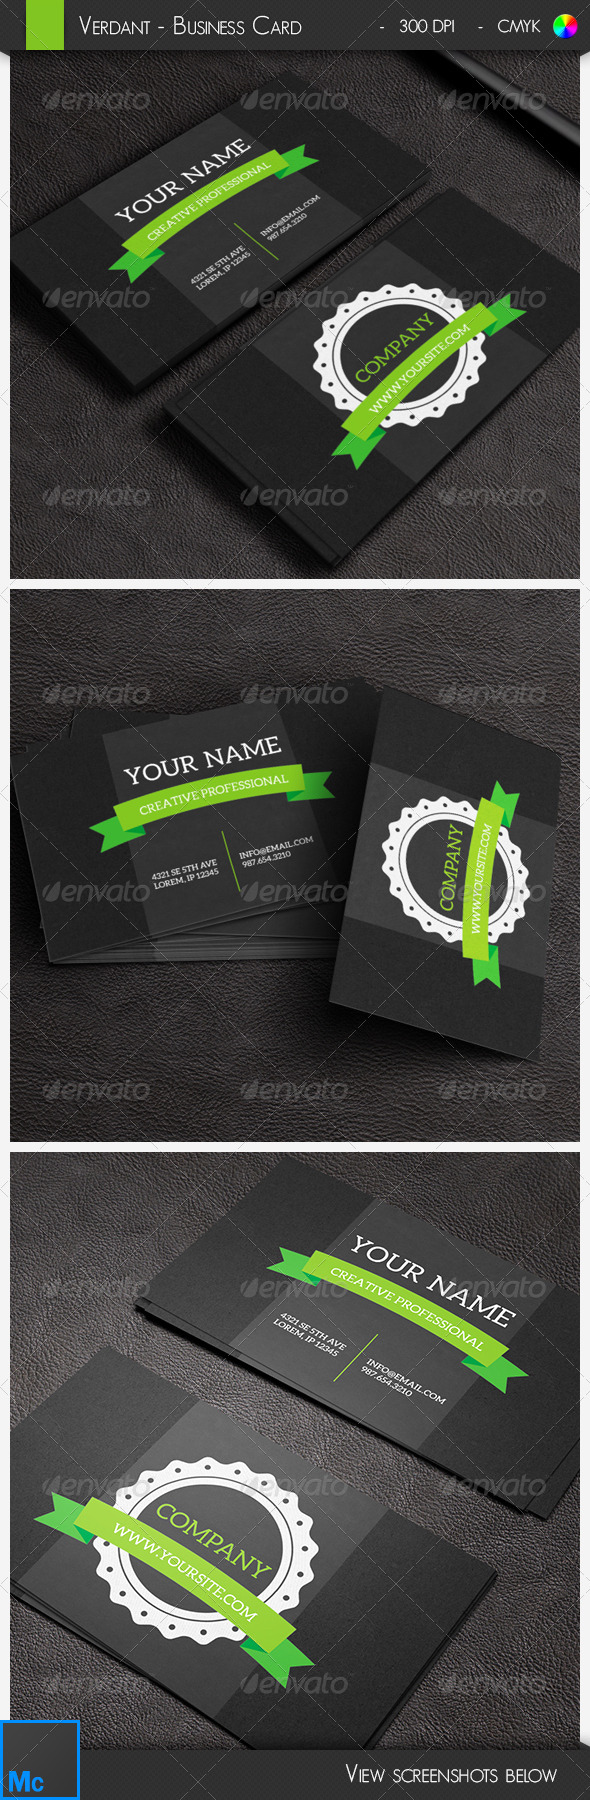 GraphicRiver Verdant Modern Business Card 6559771